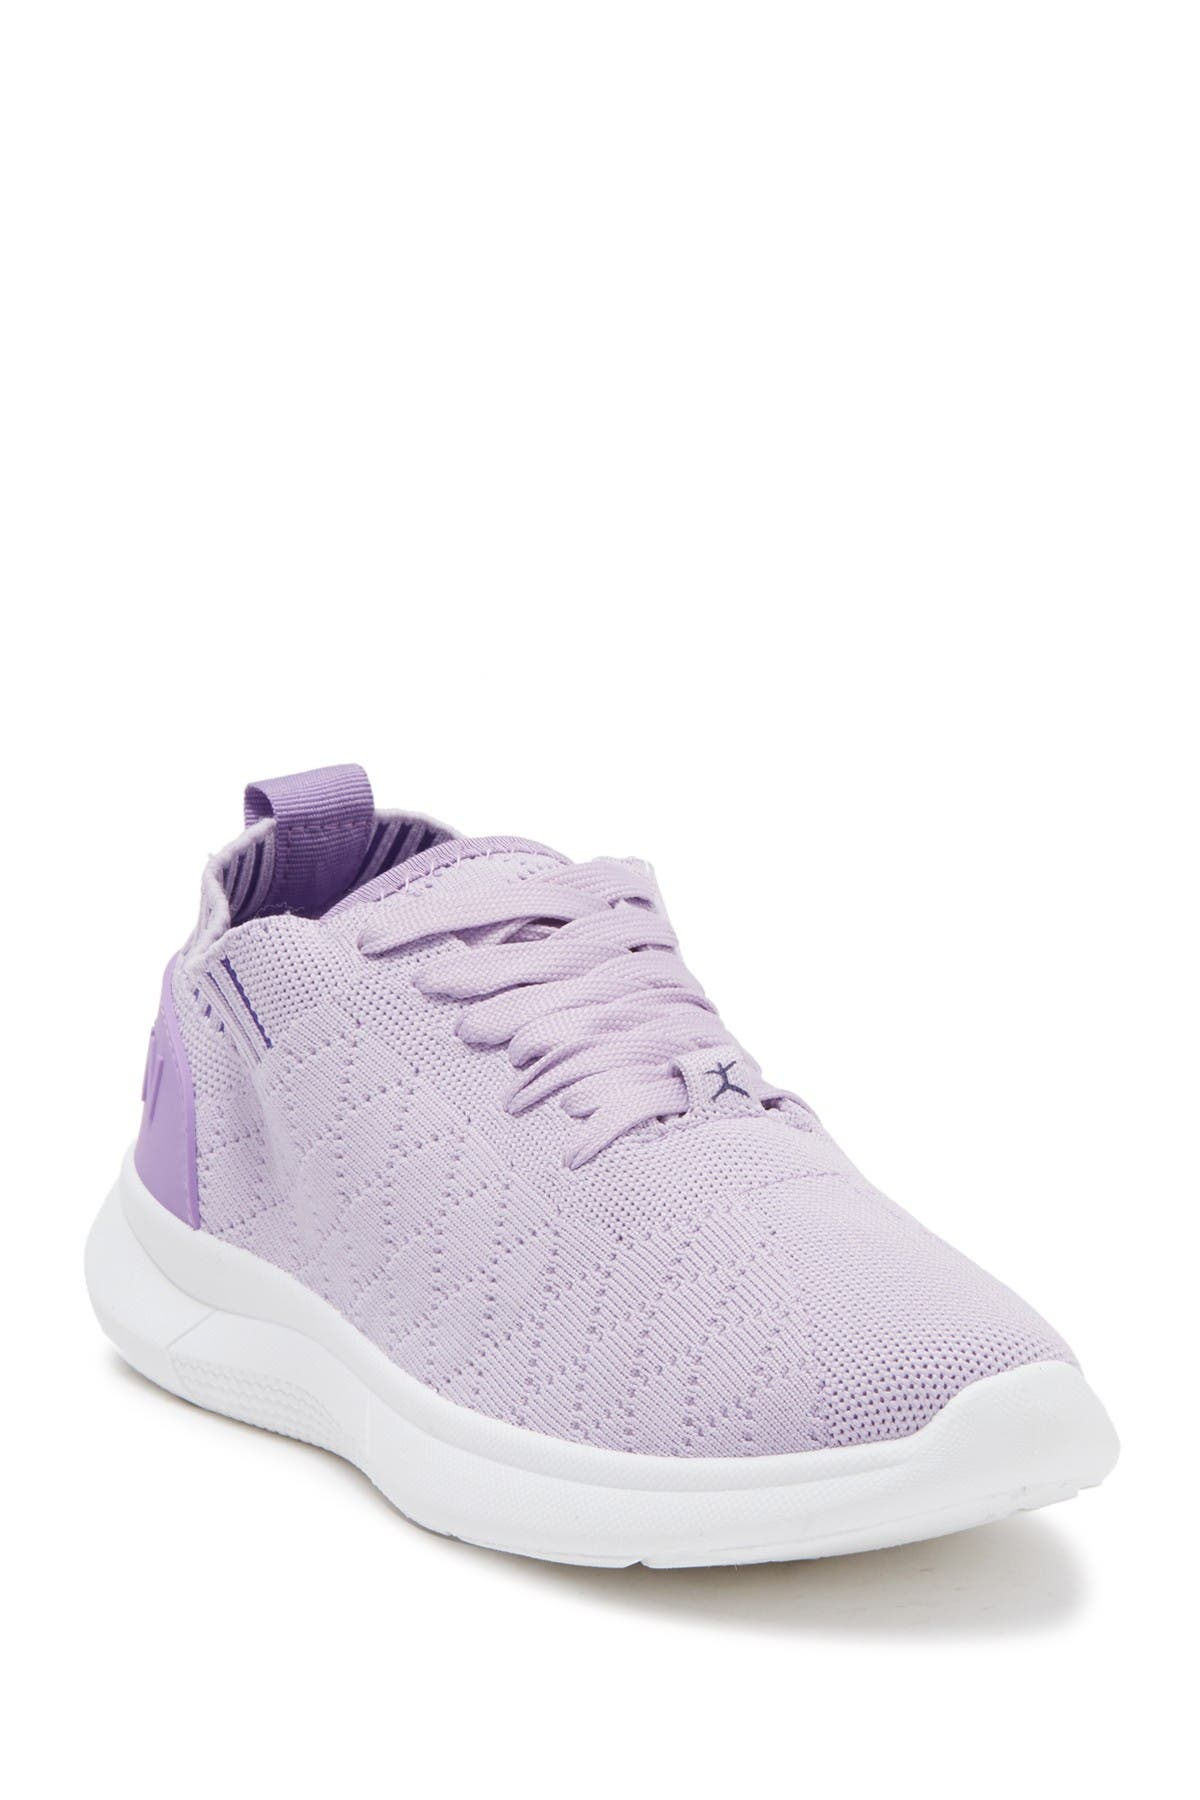 Image of DANSKIN Diamond Quilted Sock Knit Lace-Up Sneaker